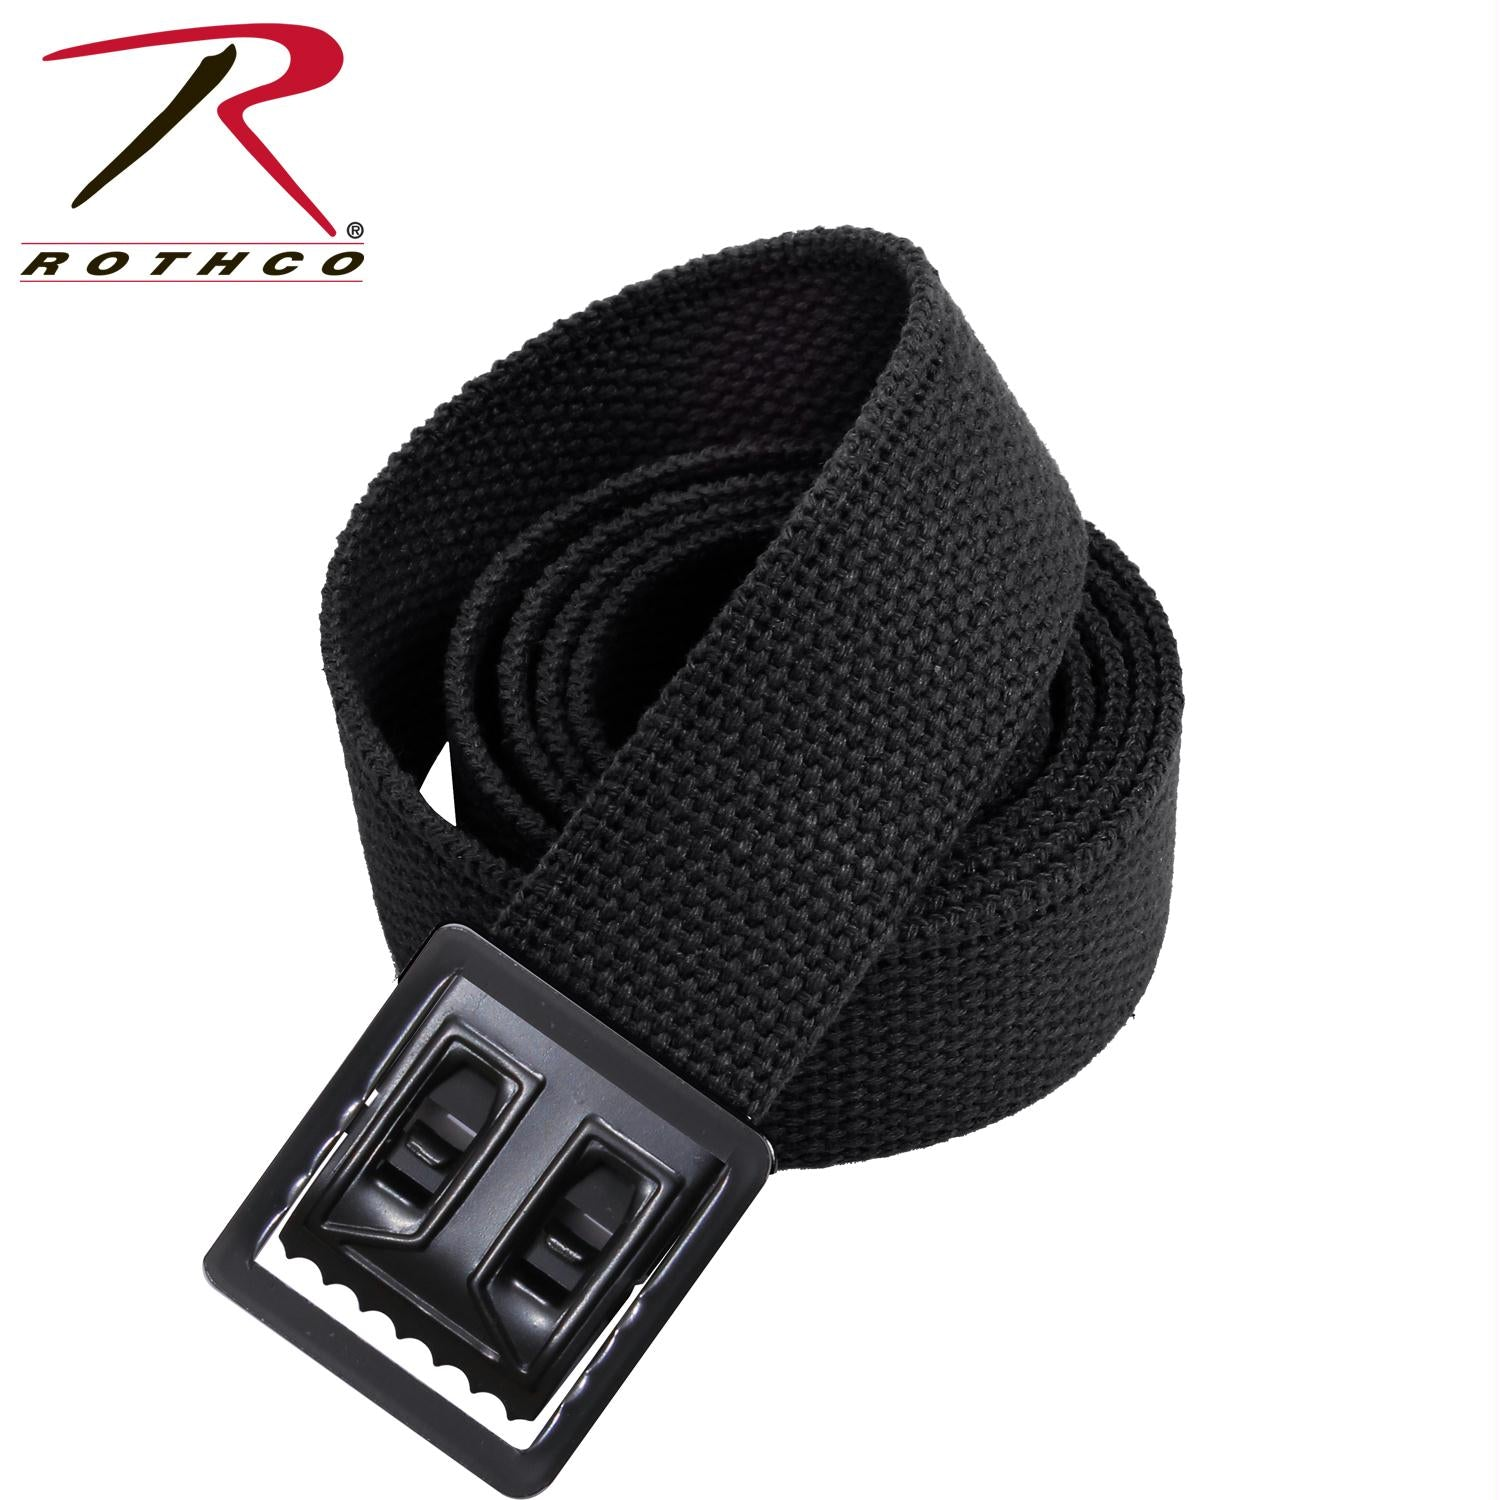 Rothco Military Web Belts w/ Open Face Buckle - Black / Black / 54 Inches